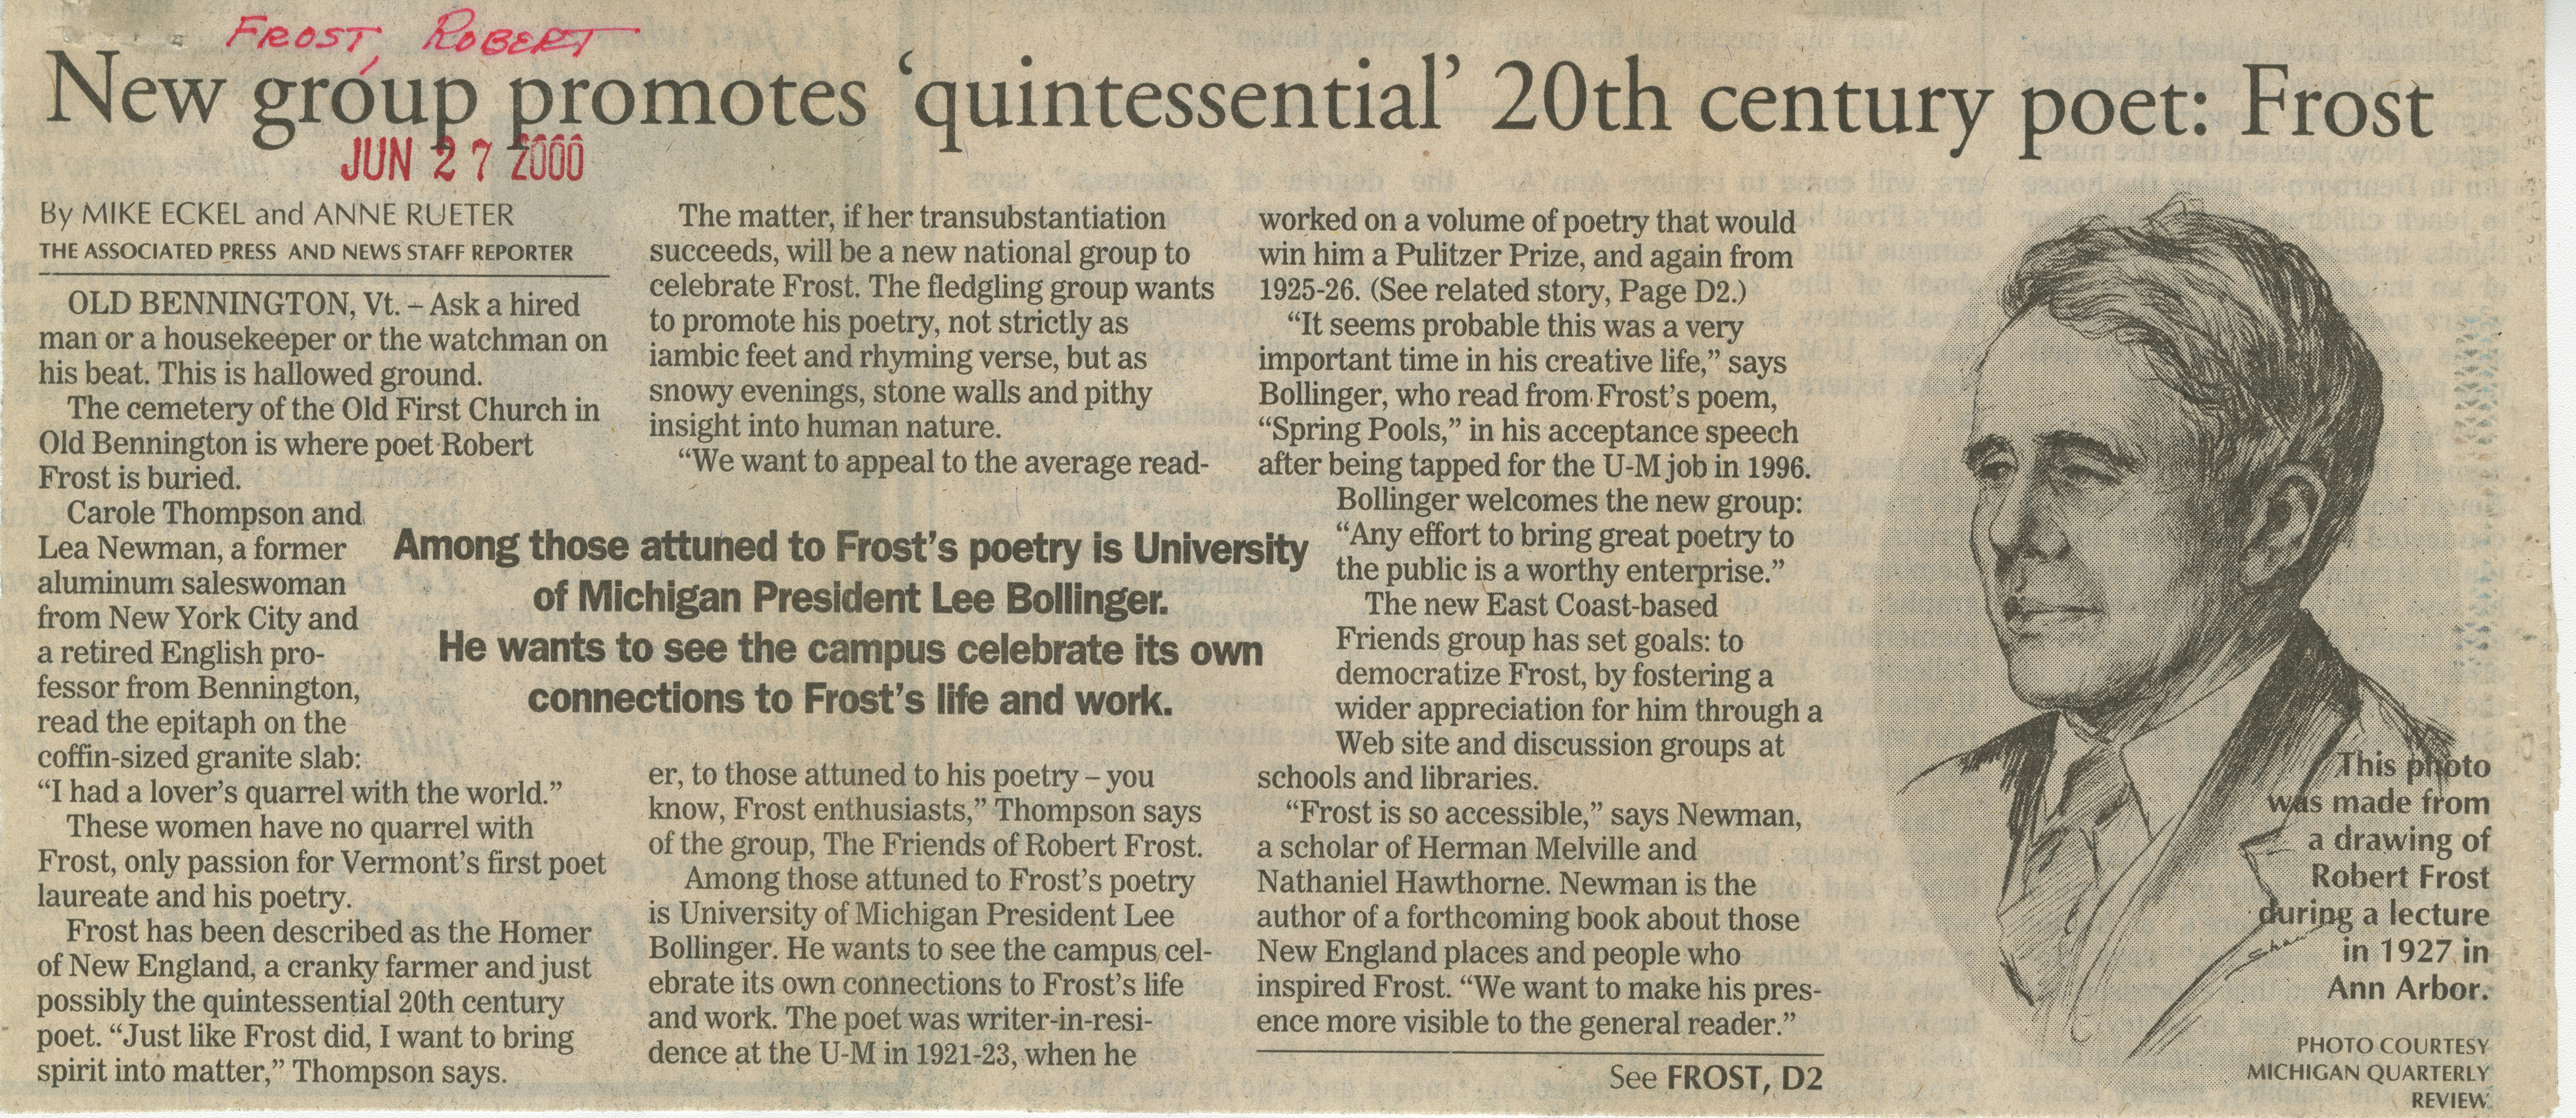 New group promotes 'quintessential' 20th century poet: Frost image